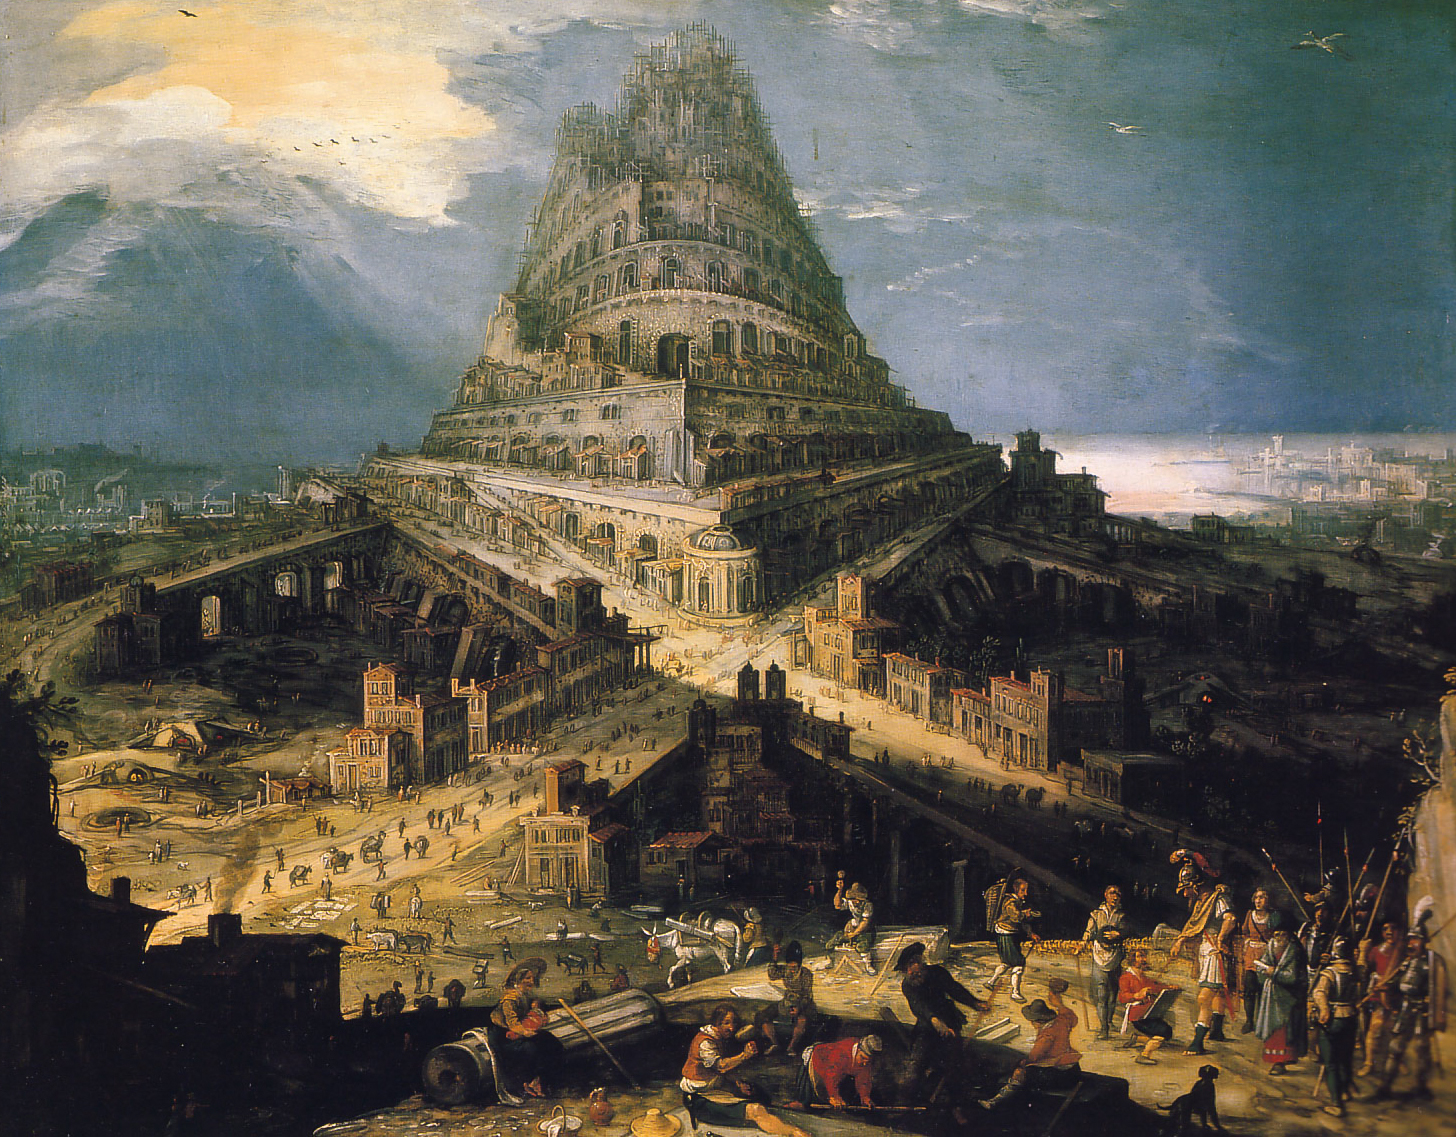 Construction of the Tower of Babel